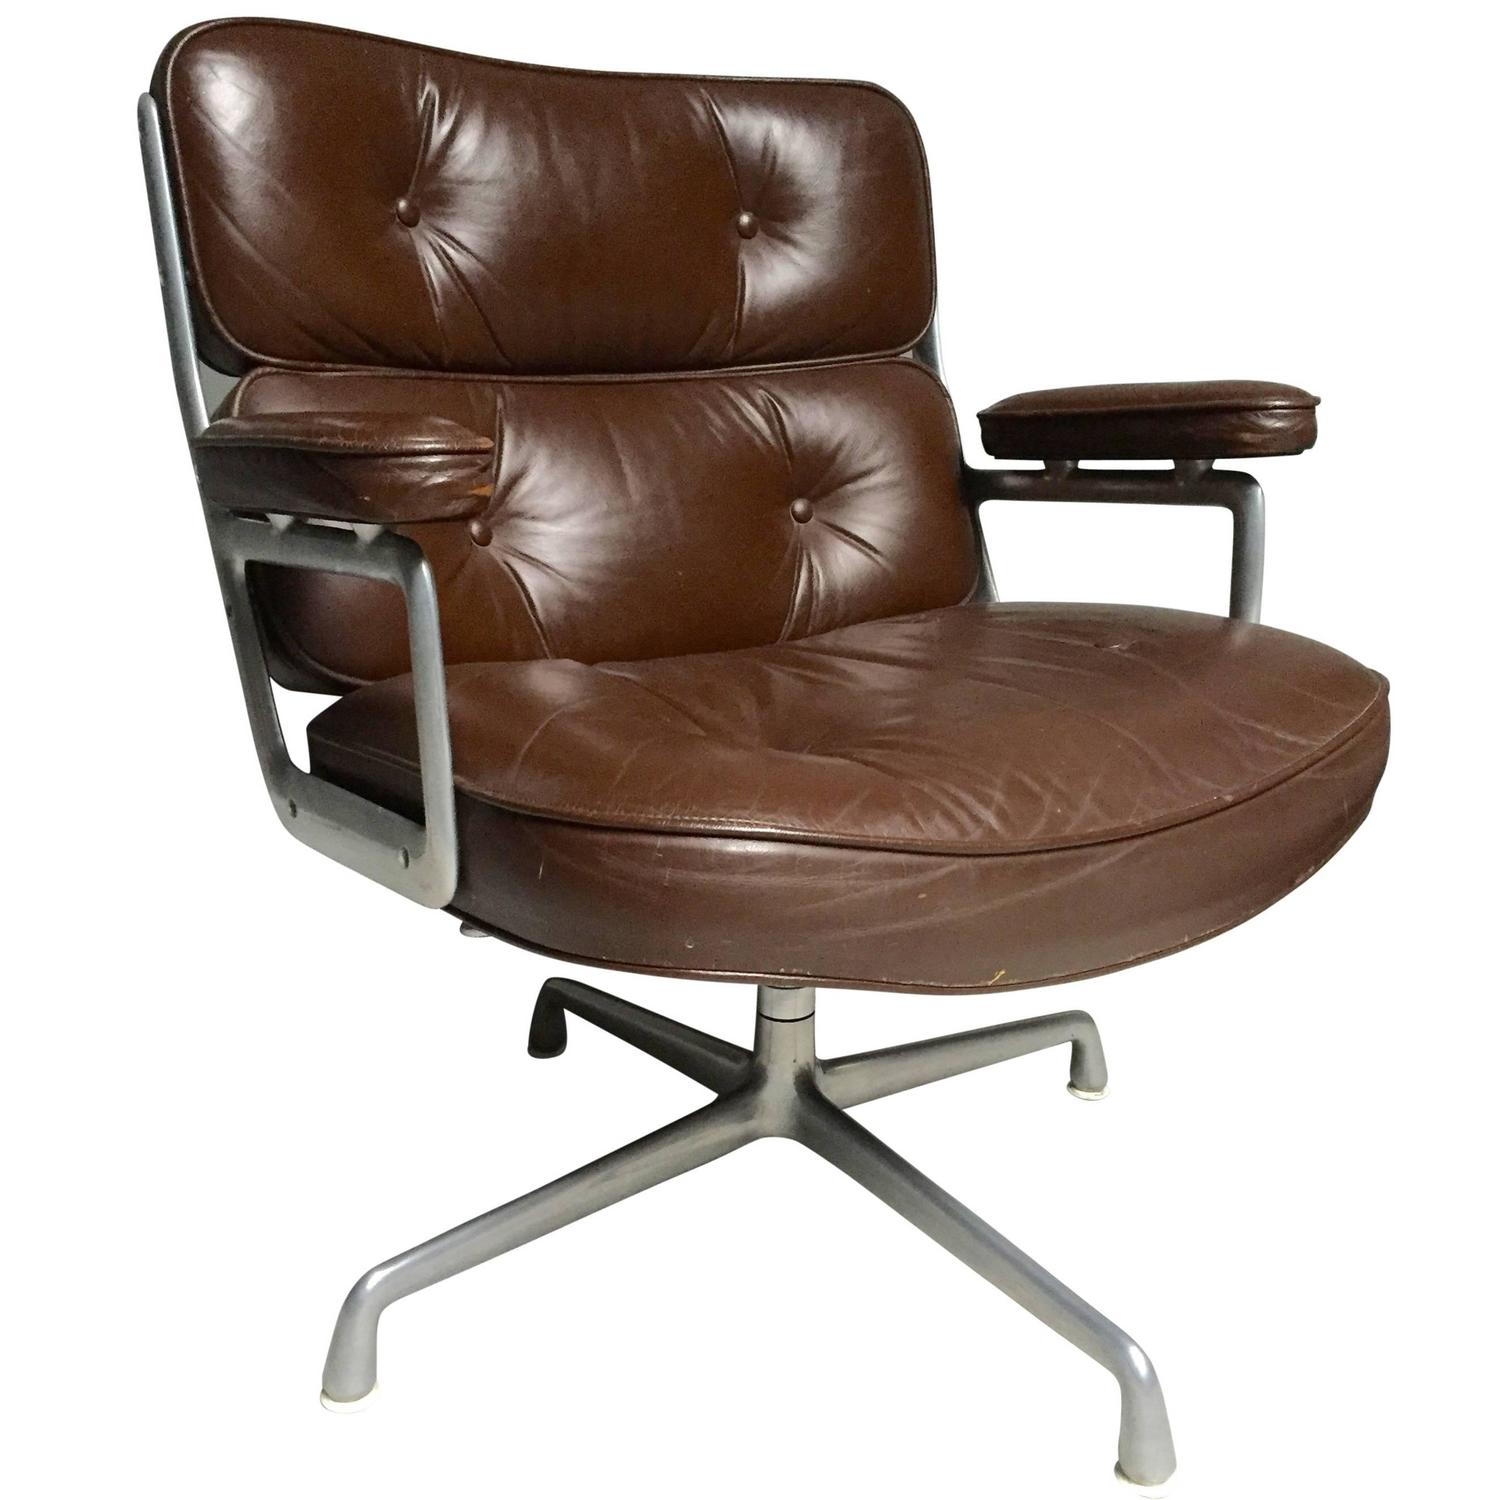 eames chairs for sale helinox chair zero accessories vintage time life at 1stdibs